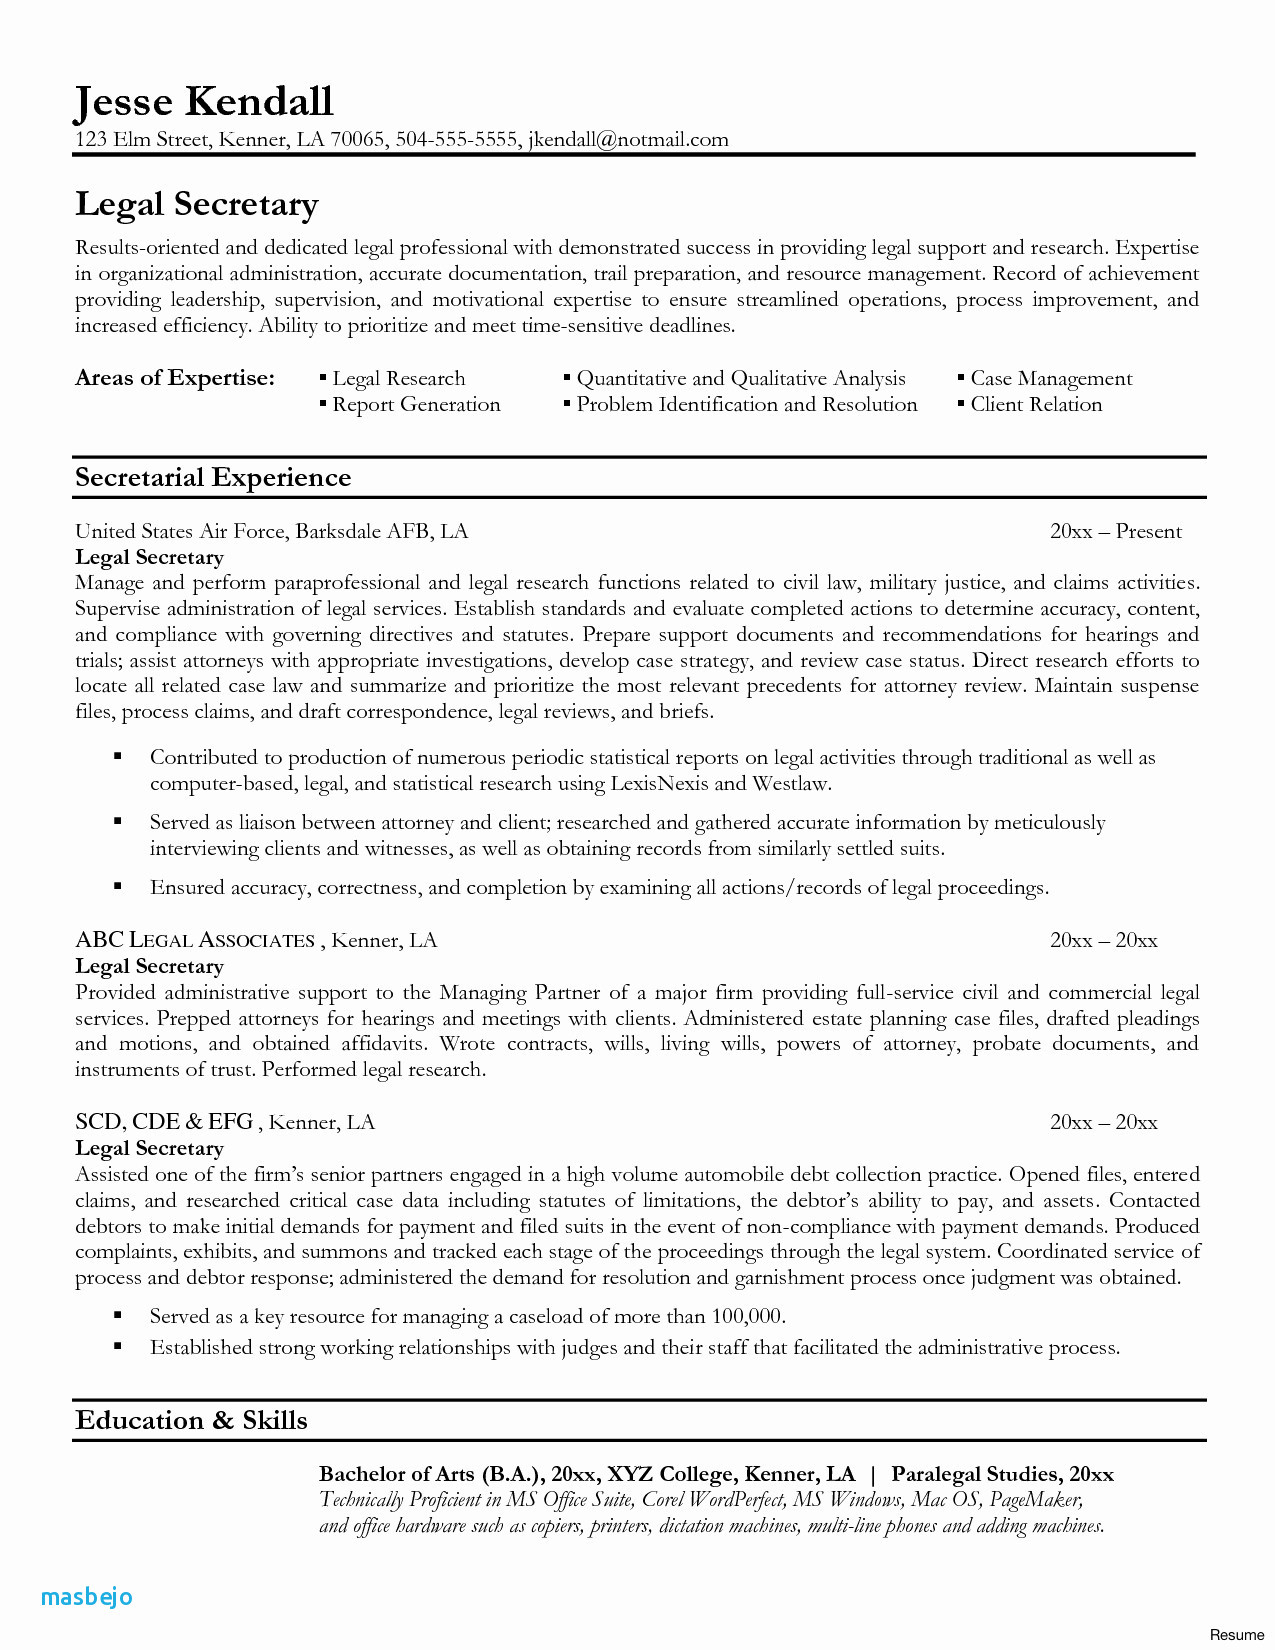 Resume Template Examples - Legal Resume Examples Law Student Resume Template Best Resume